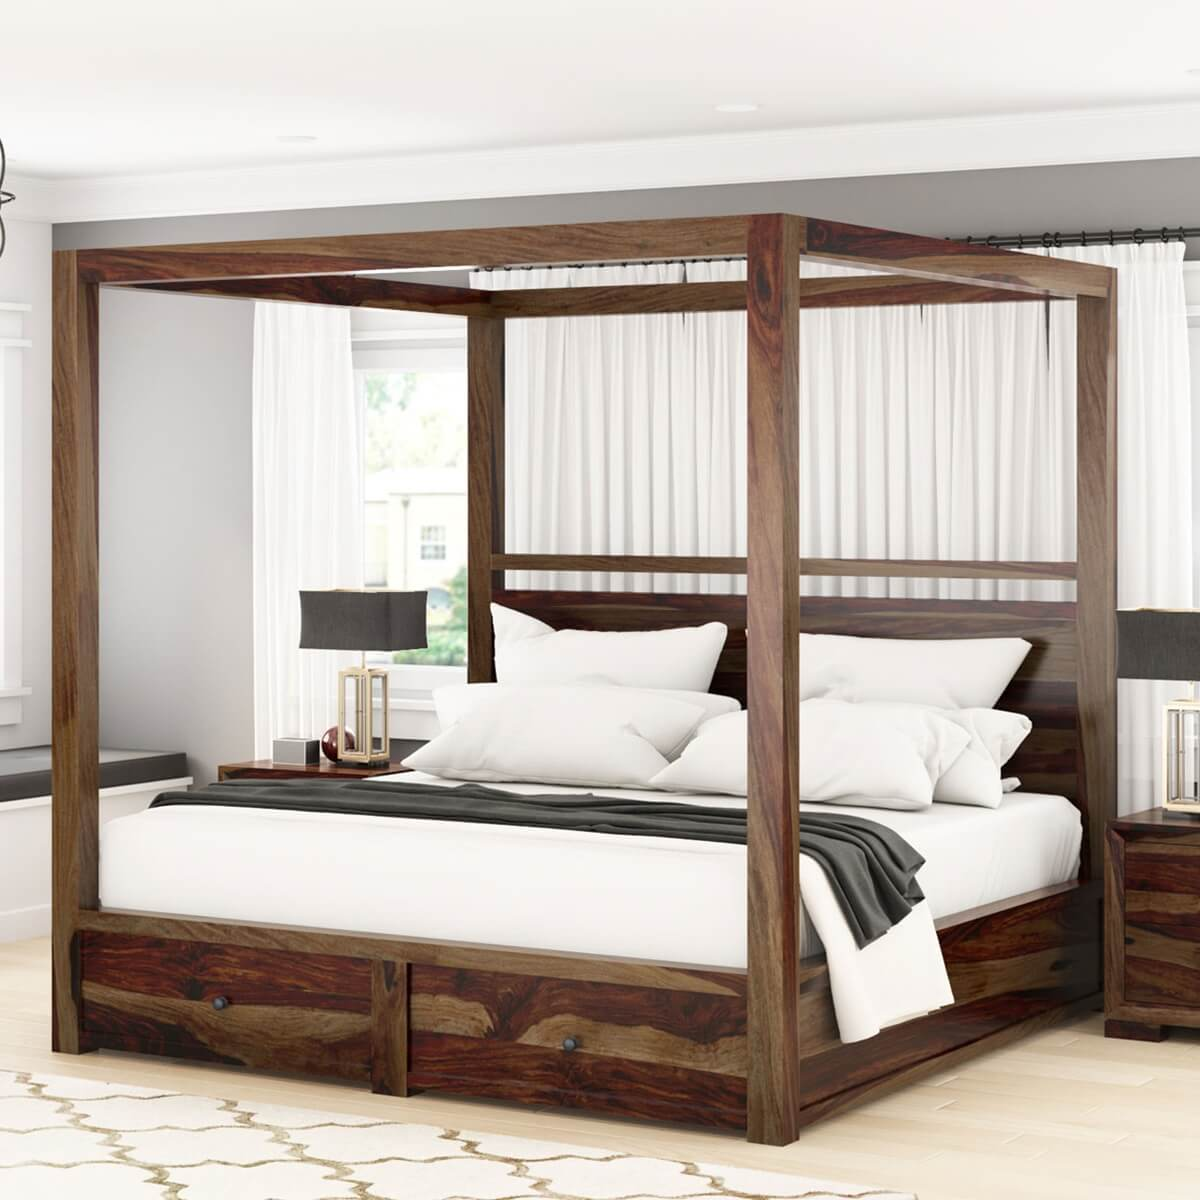 - Farson Contemporary Storage Rustic Canopy Bed